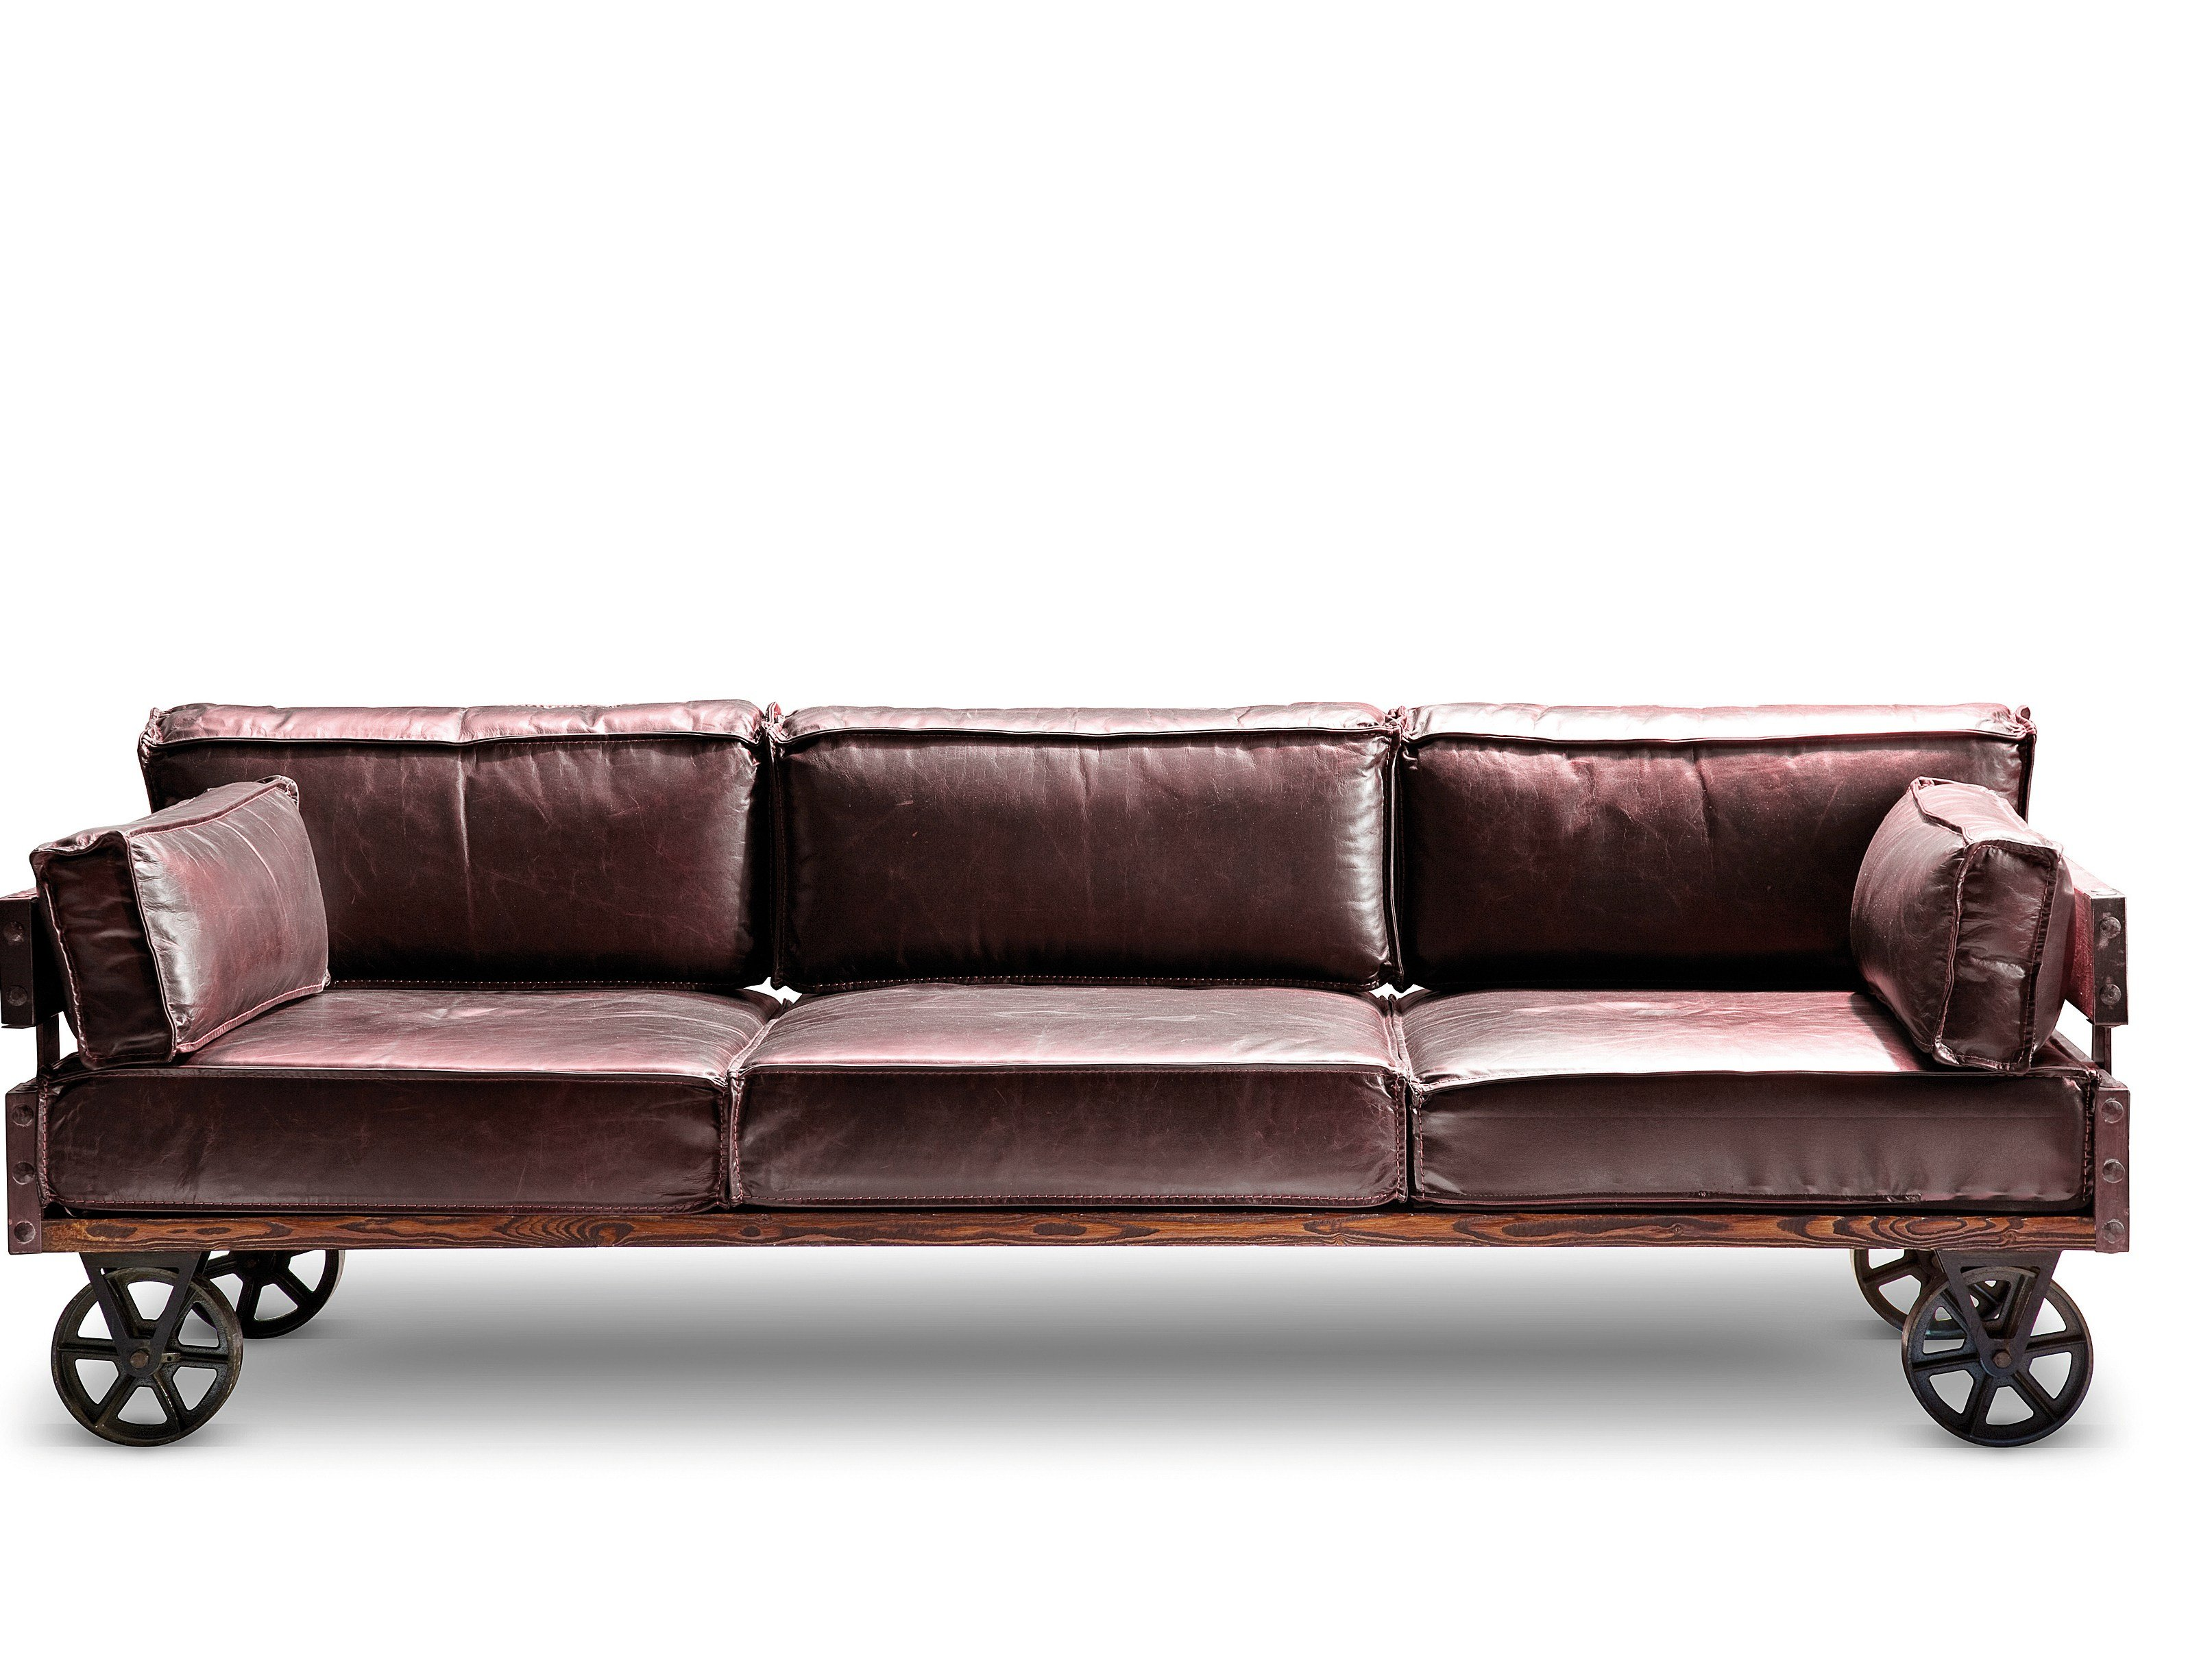 Railway sofa by kare design for Design sofa